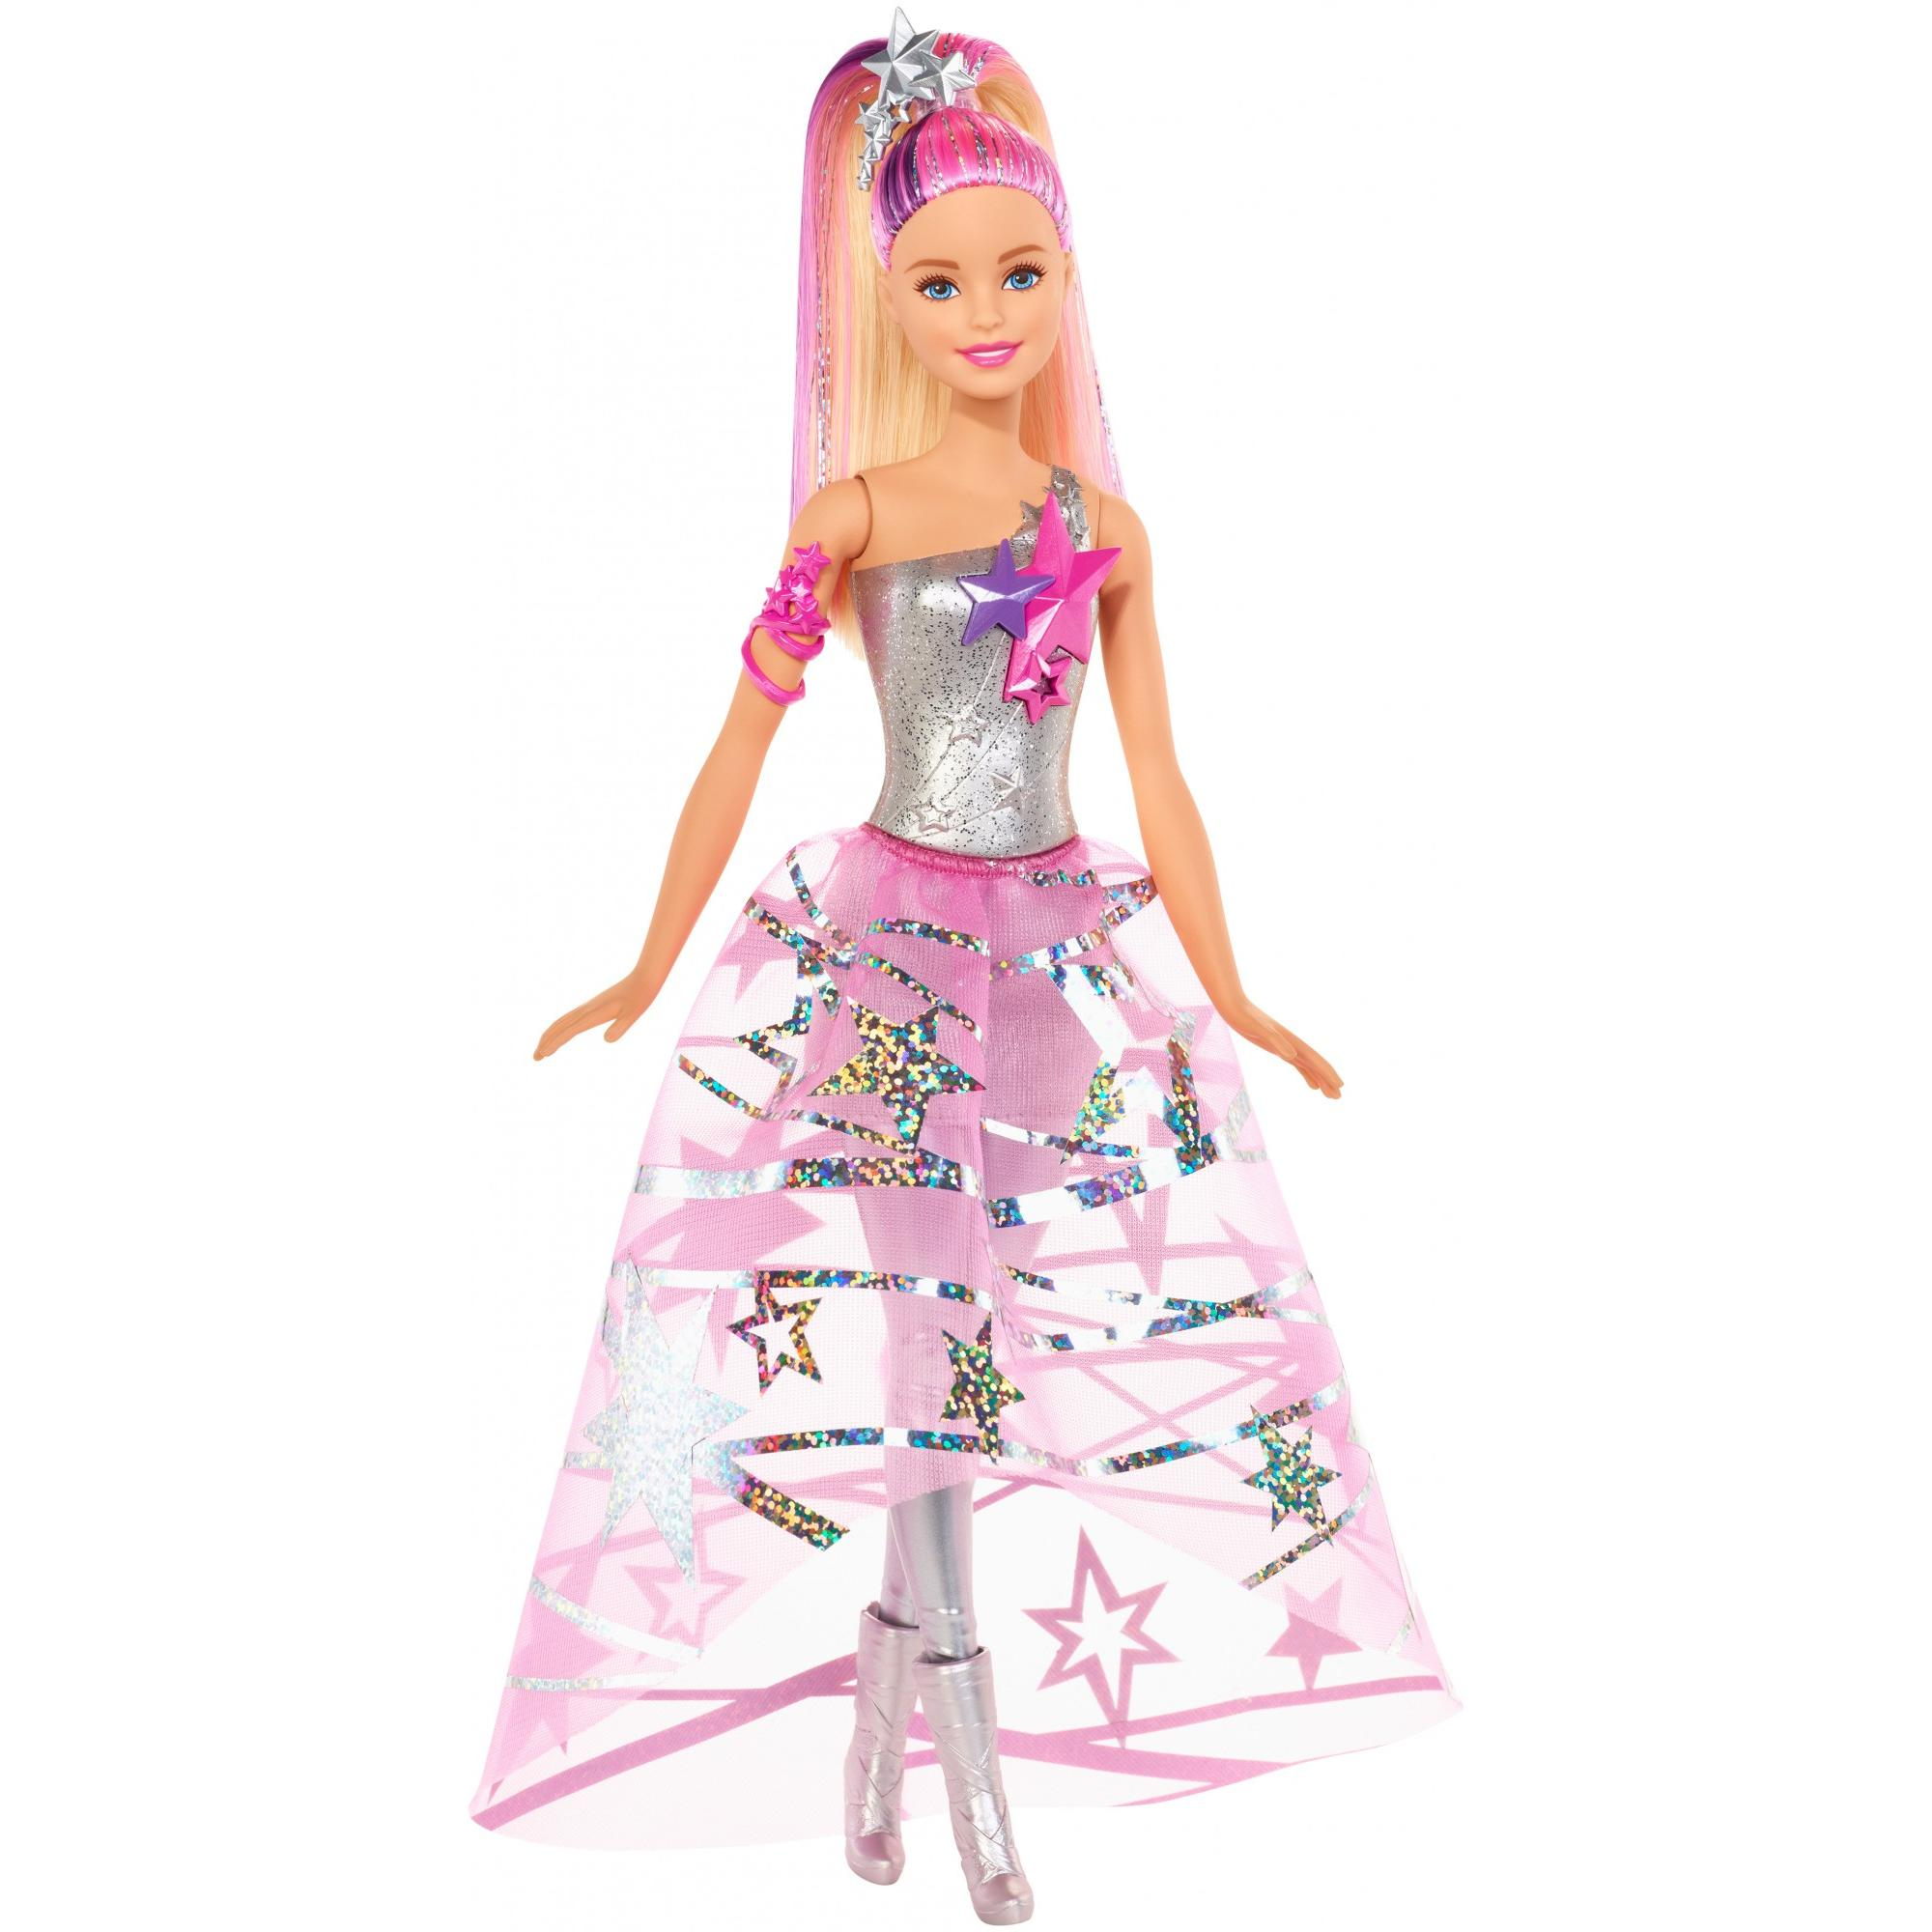 Barbie Star Light Adventure Gown Doll - Walmart.com